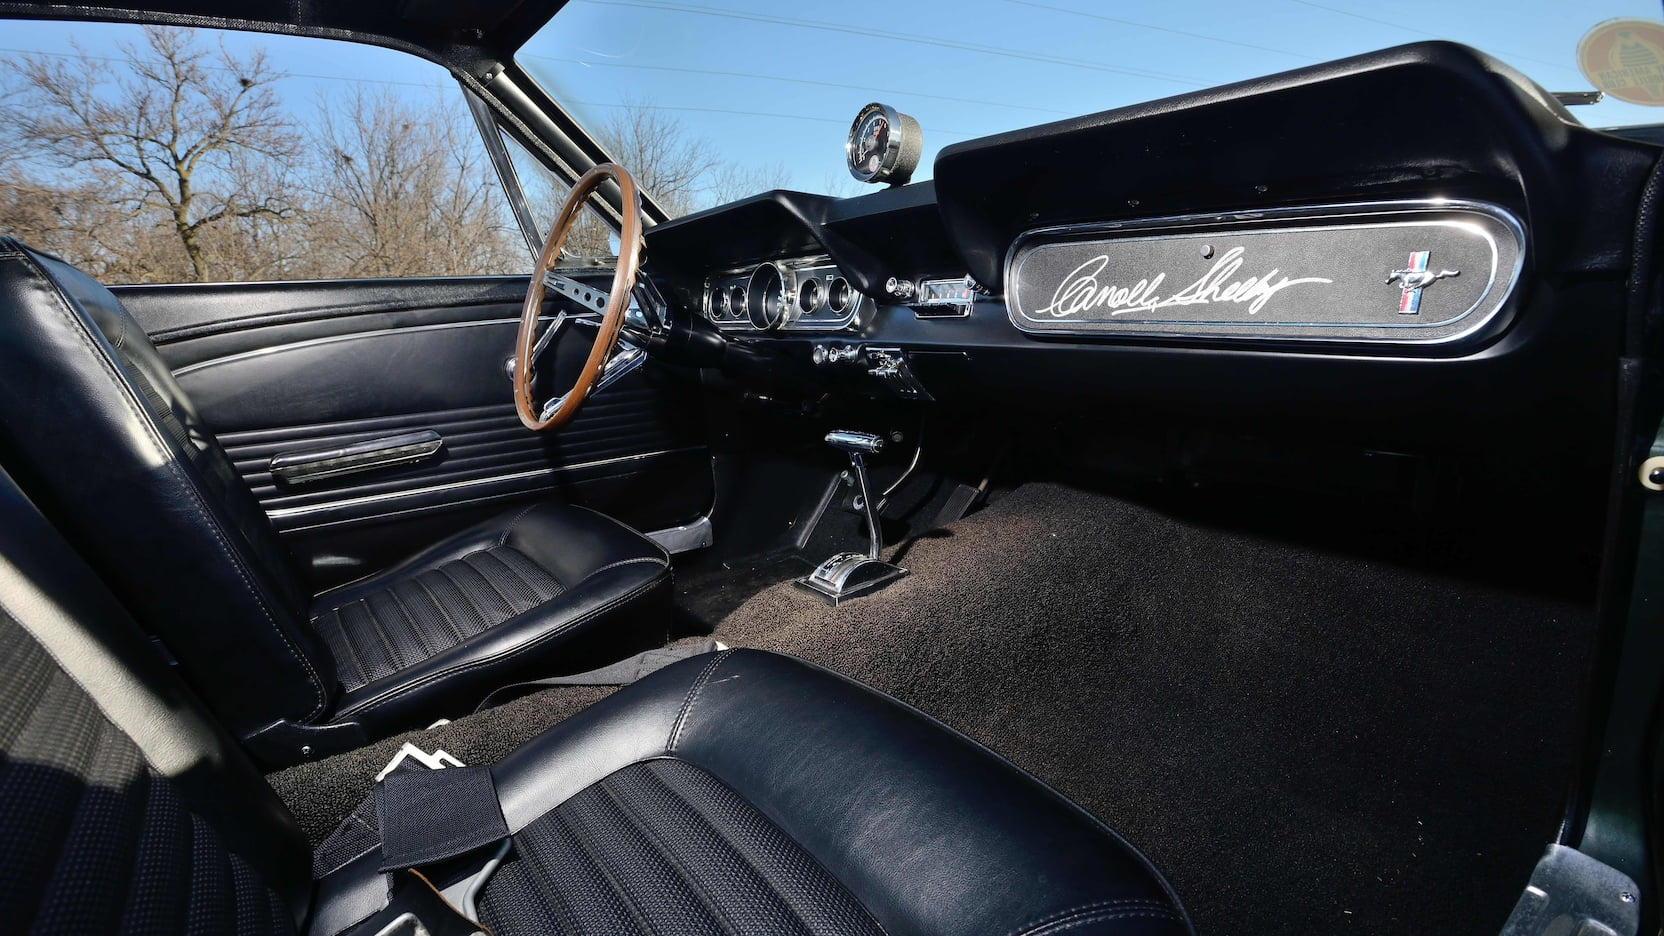 1966 Shelby GT350 Shelby glove box signature